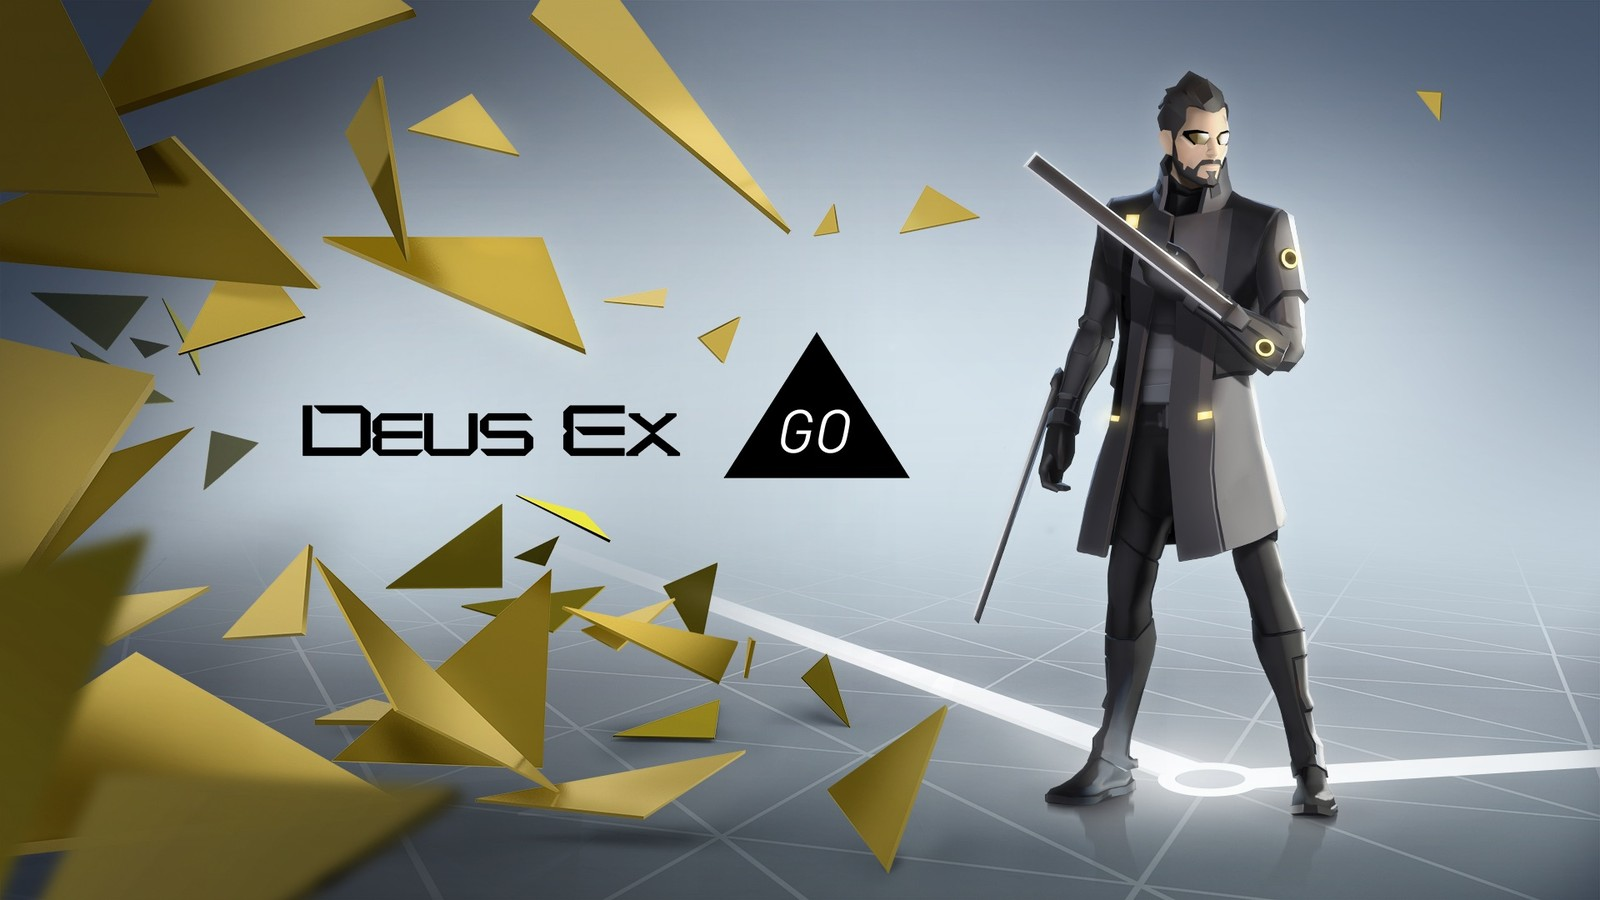 Deus Ex GO v2.1.3 – IOS (iPad/iPhone)